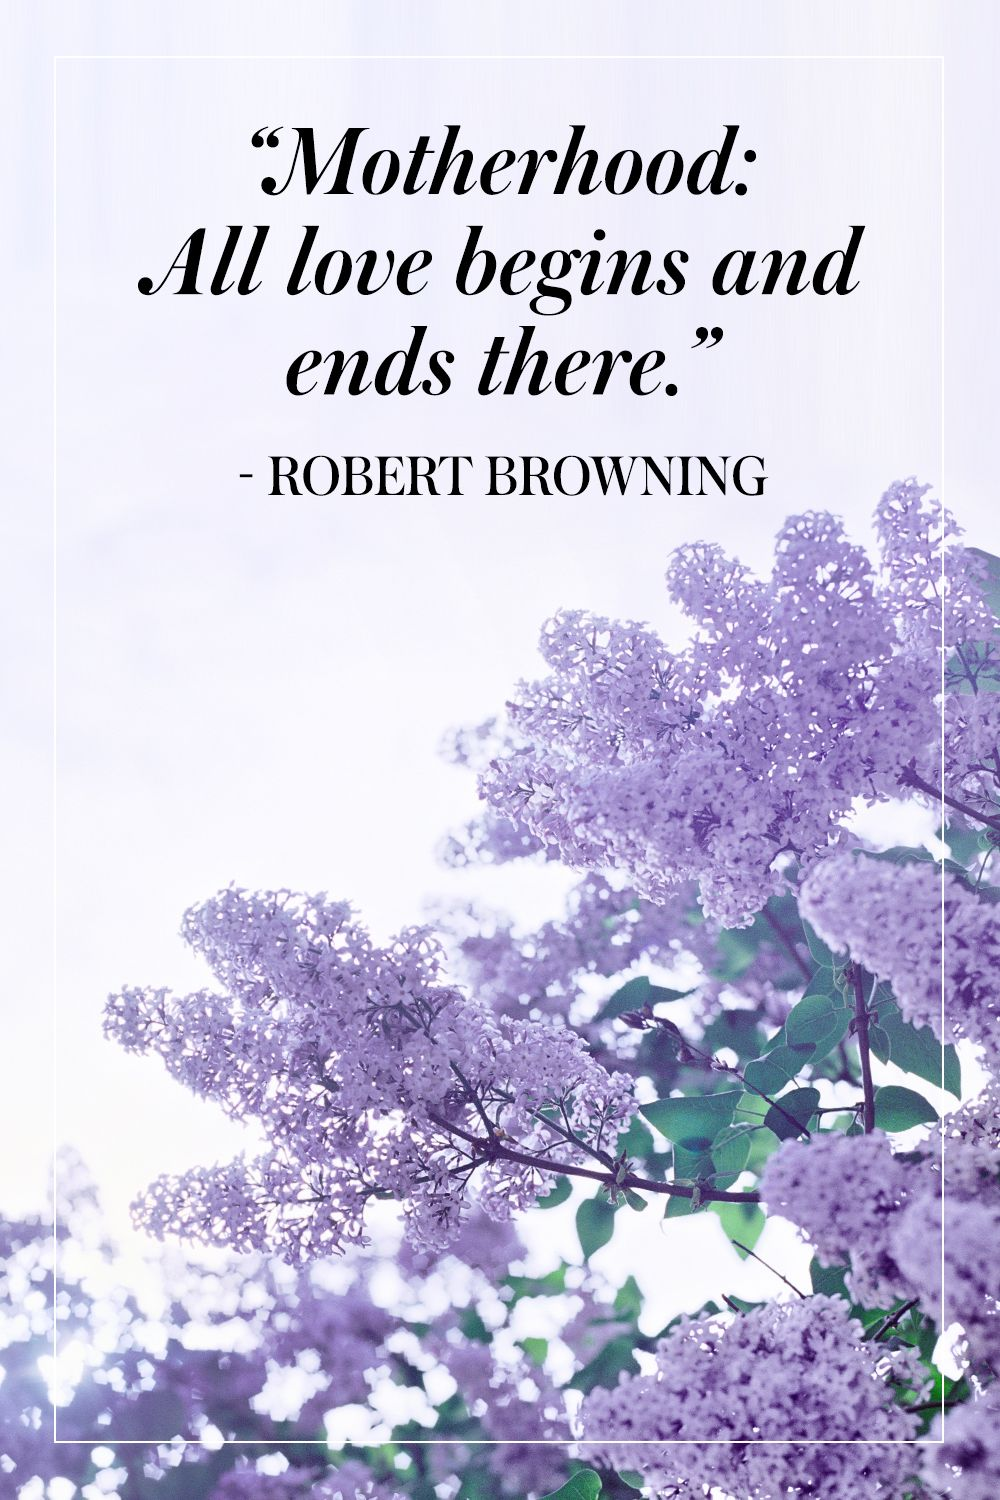 """""""Motherhood: All love begins and ends there."""" - Robert Browning"""